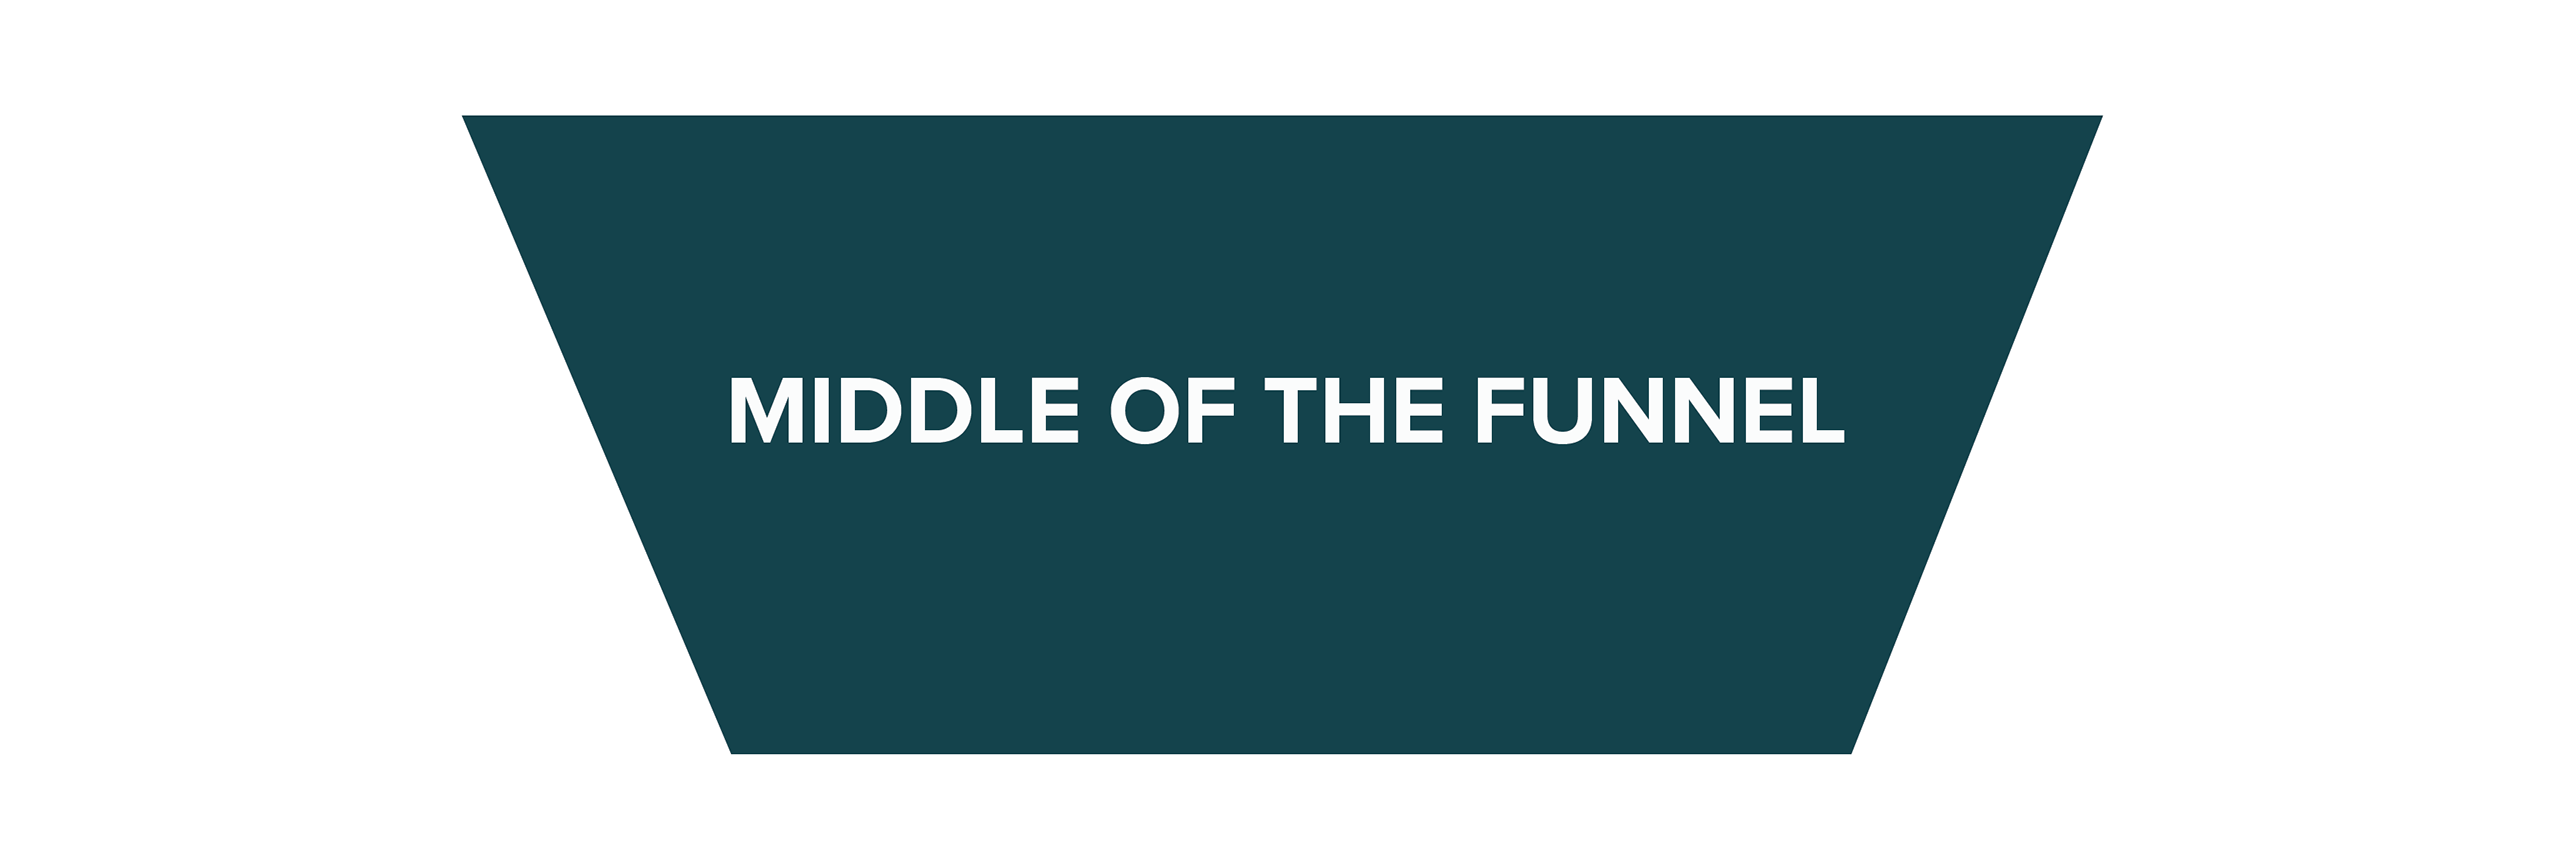 middle of the funnel for finance marketing